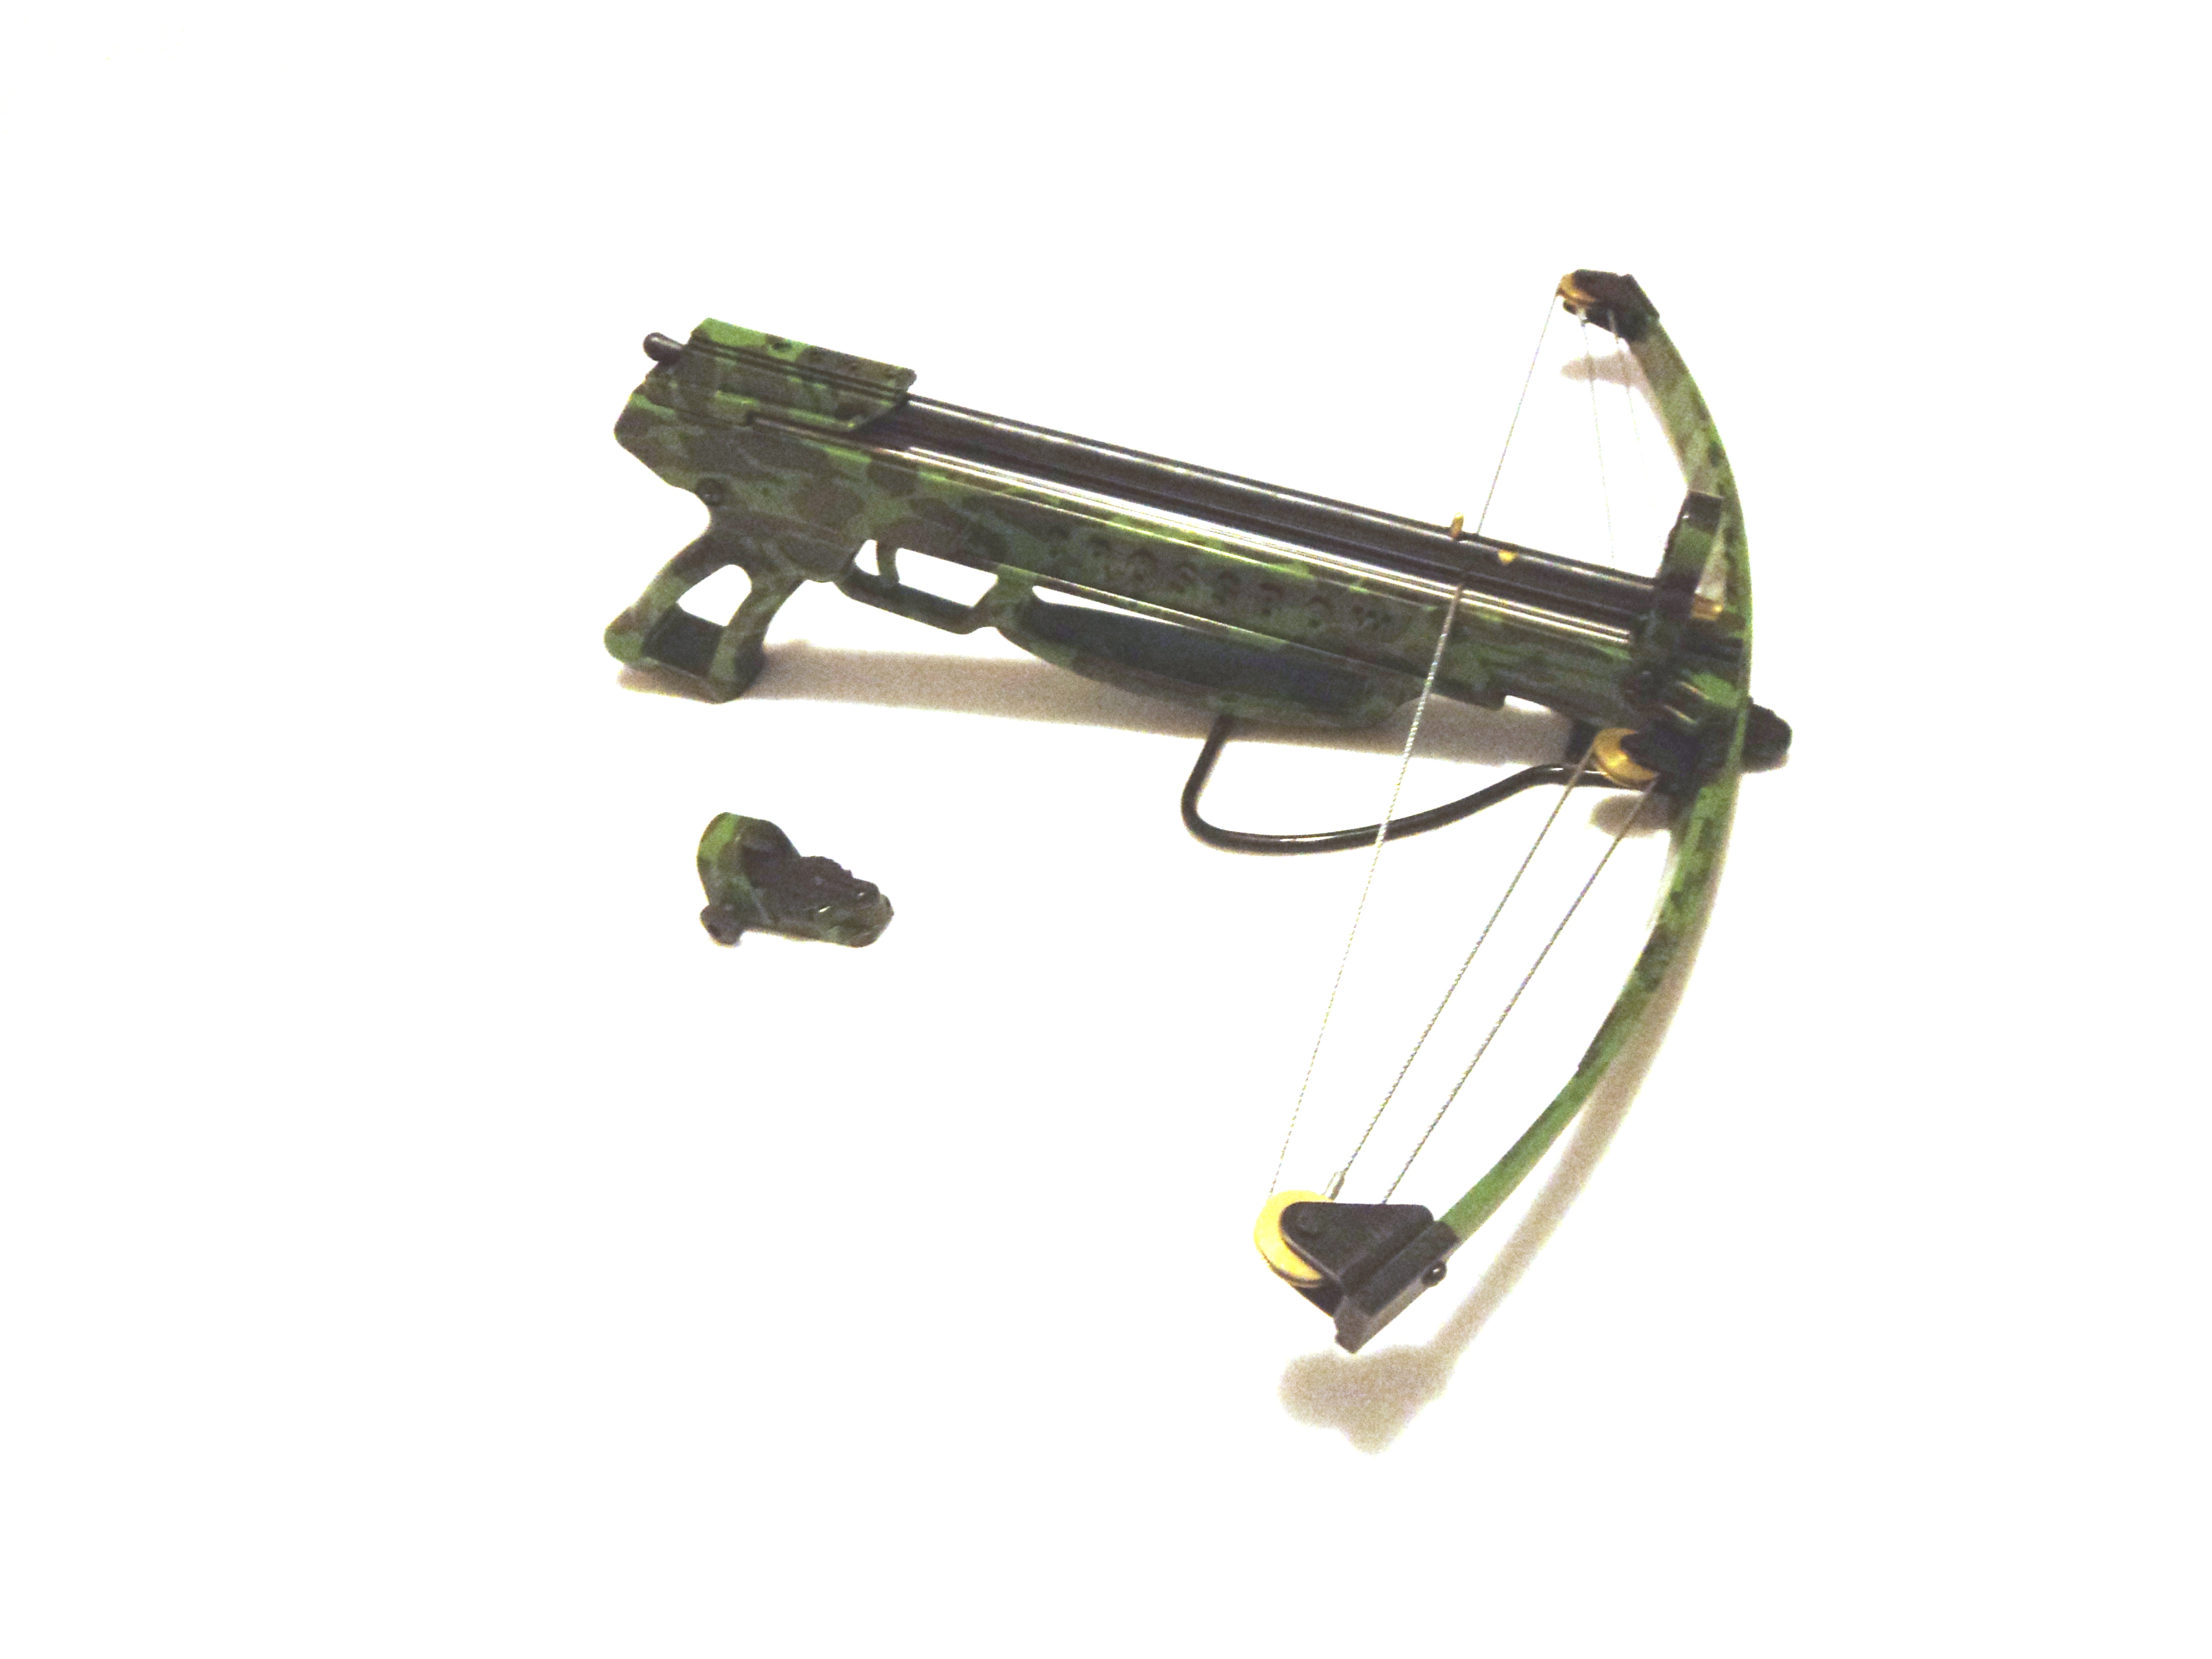 William tell archery supplies 80 lbs commando for Fishing crossbow pistol